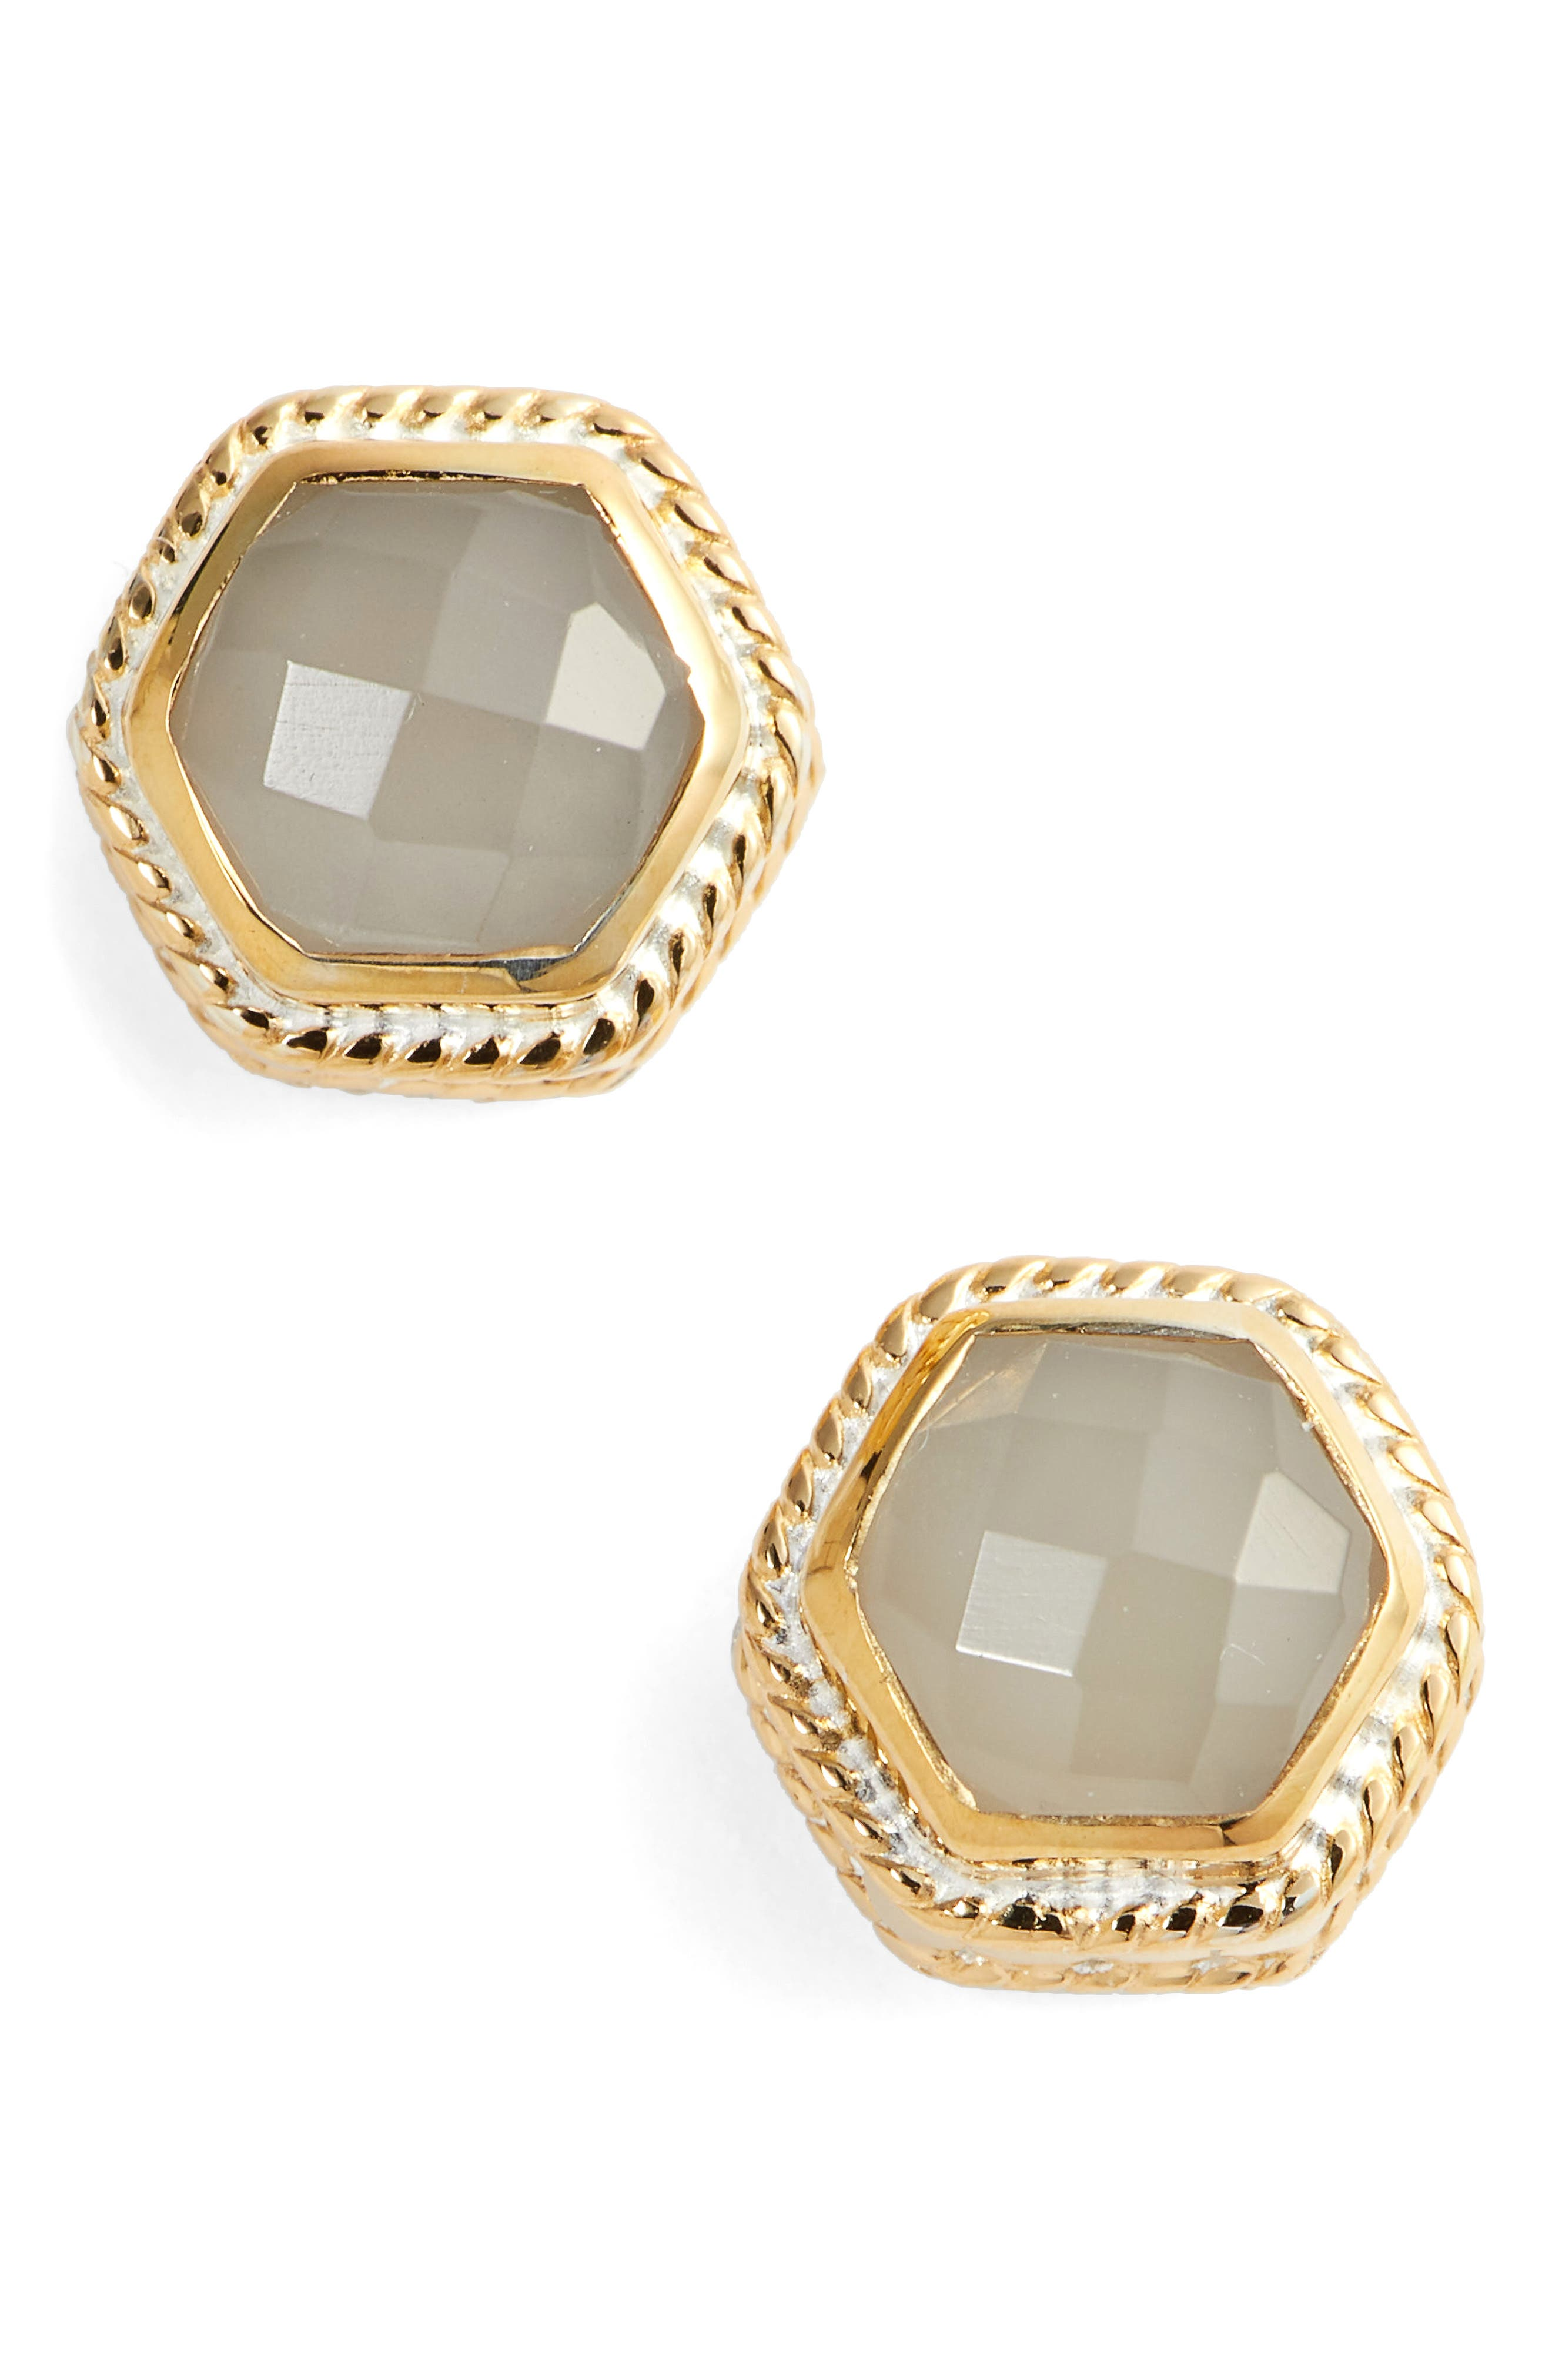 Grey Moonstone Hexagon Stud Earrings,                             Main thumbnail 1, color,                             Gold/ Grey Moonstone